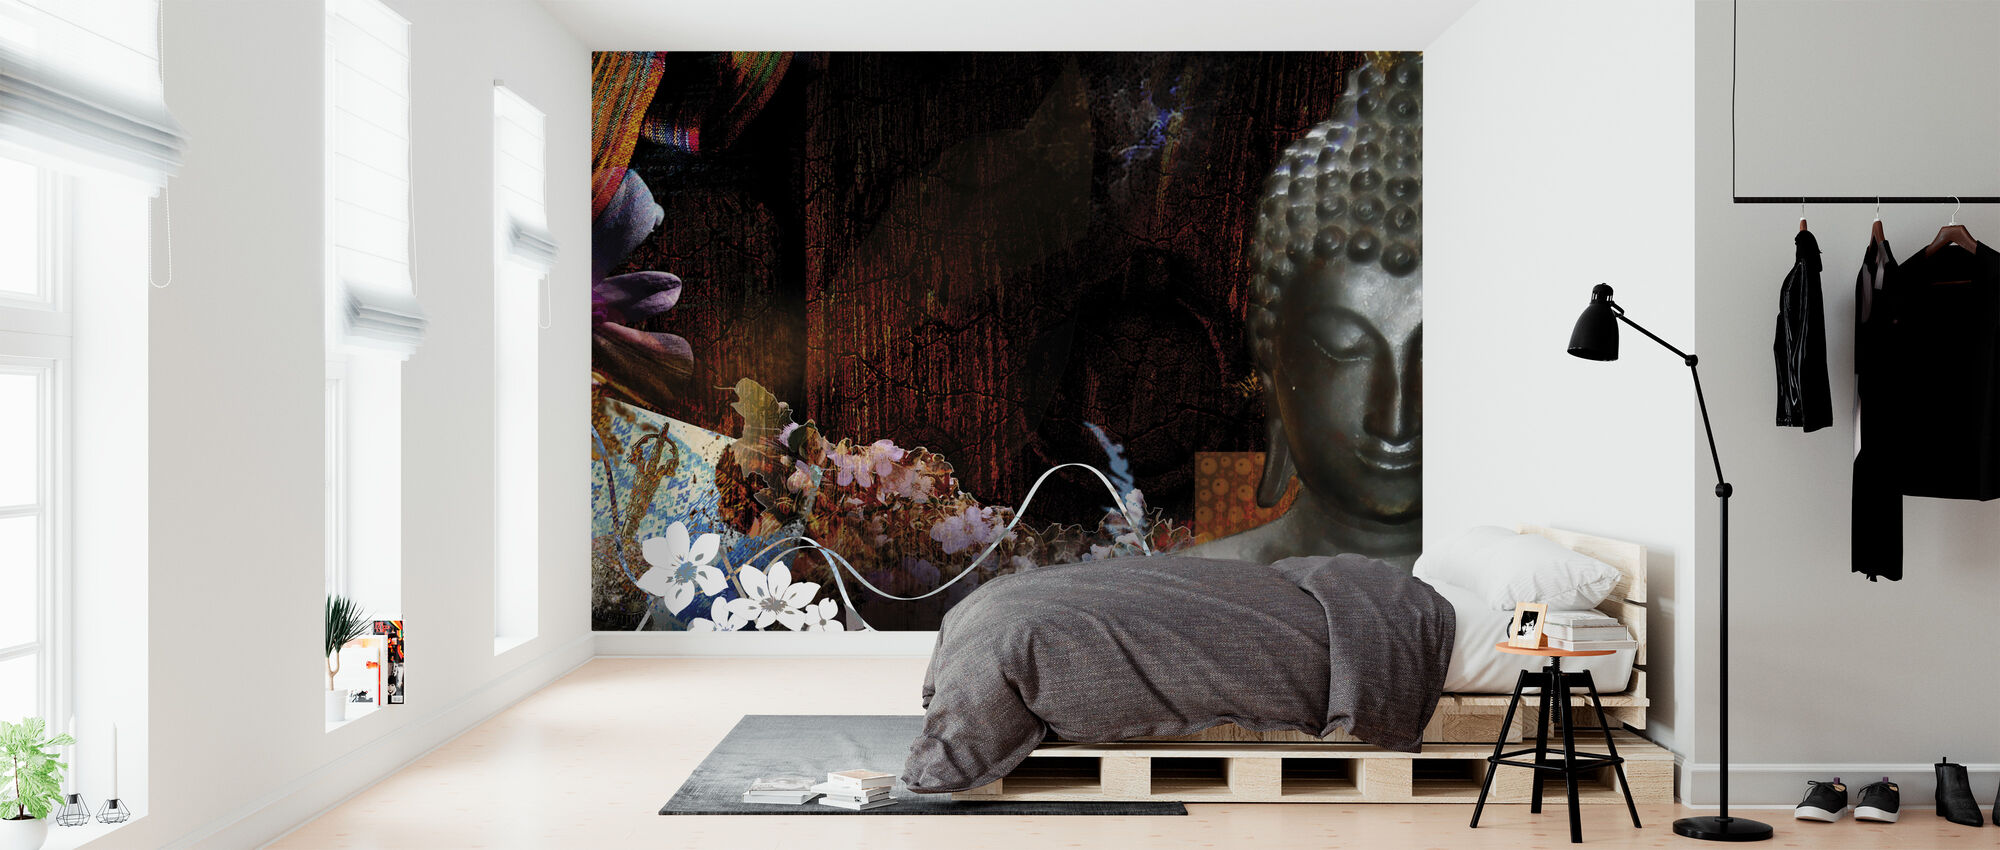 Buddha with Flowers - Wallpaper - Bedroom